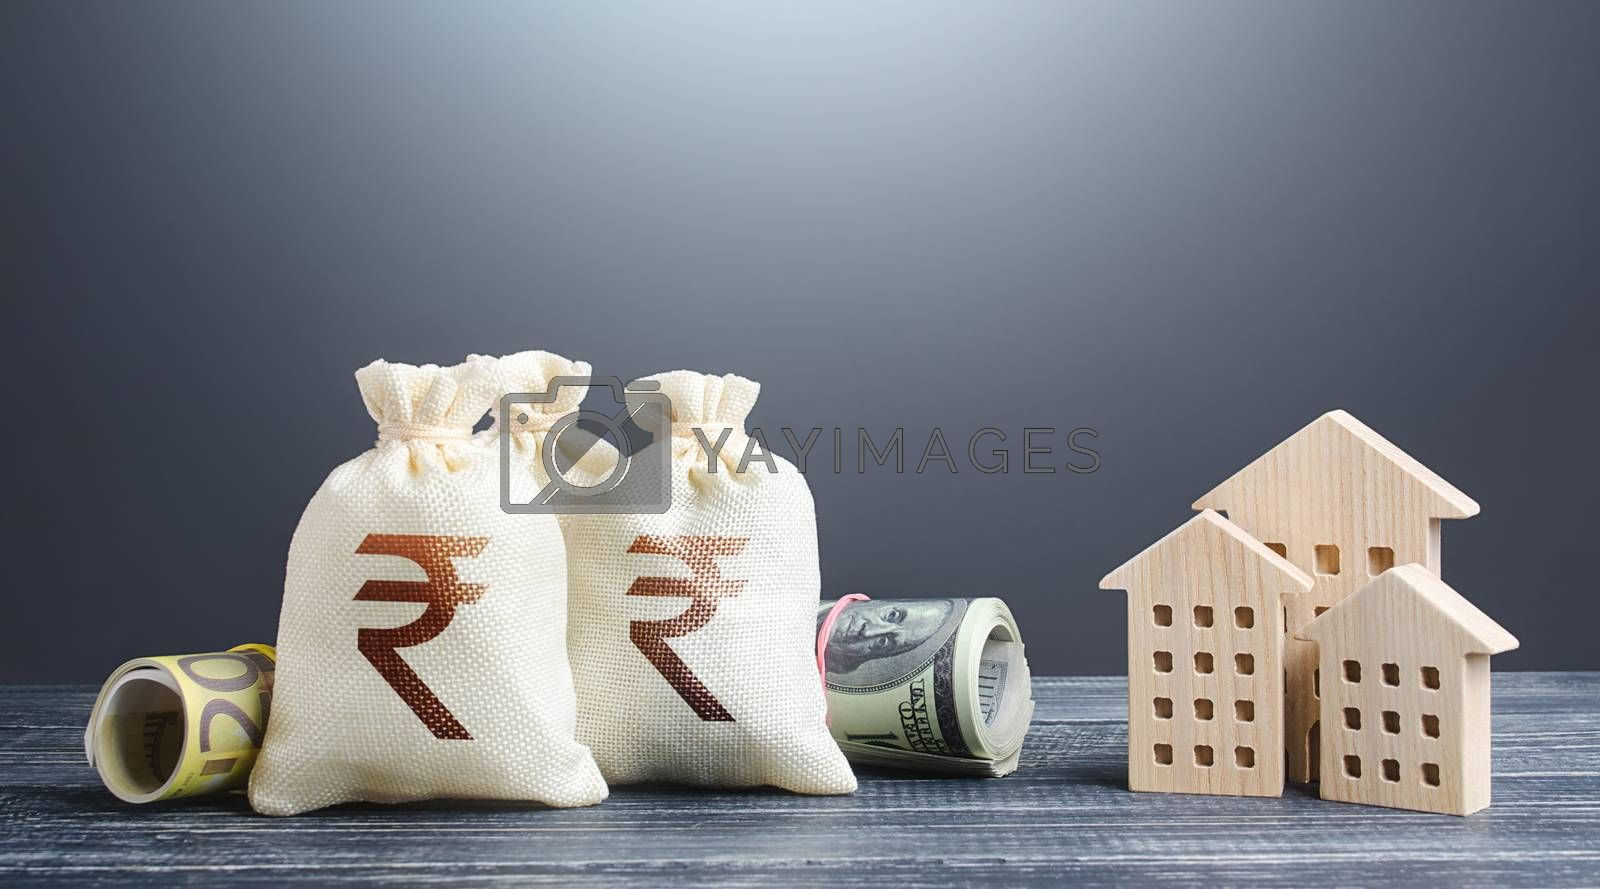 Indian rupee money bags and residential buildings figures. Investments in real estate. Mortgage loan. Financing the construction and renovation of housing. Municipal budget management. Taxes.